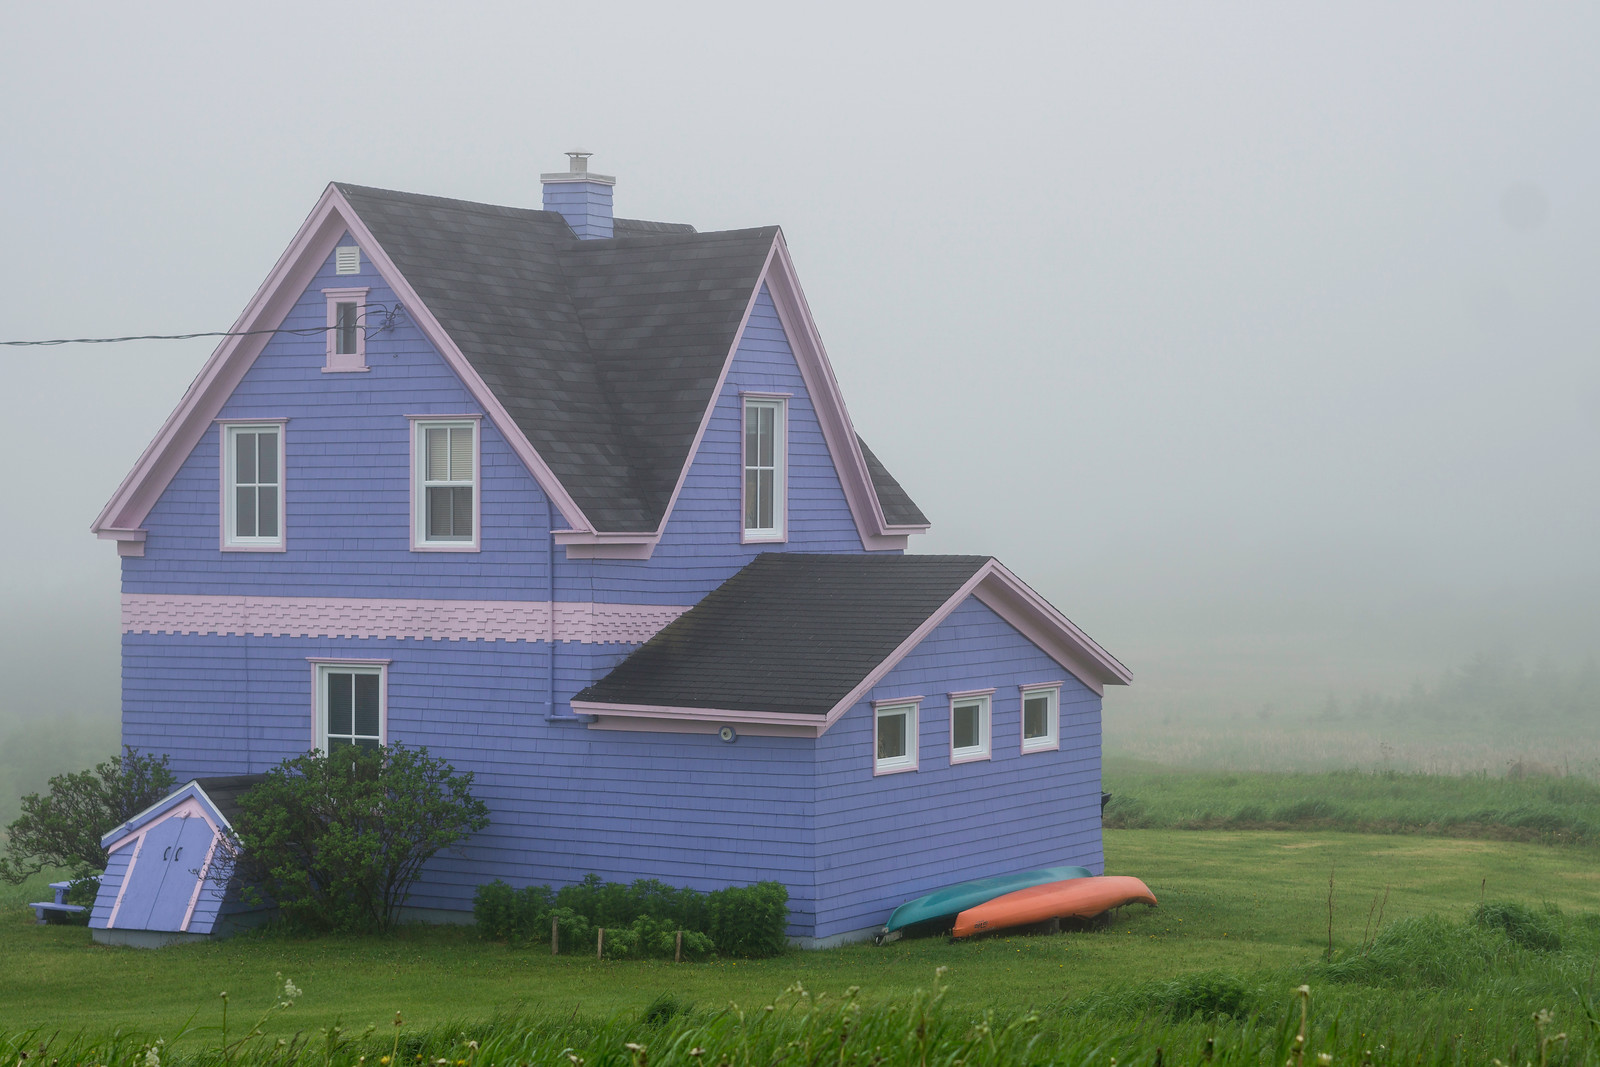 This house in Havre-aux-Maisons is hard to lose on a foggy day, which is probably the point!